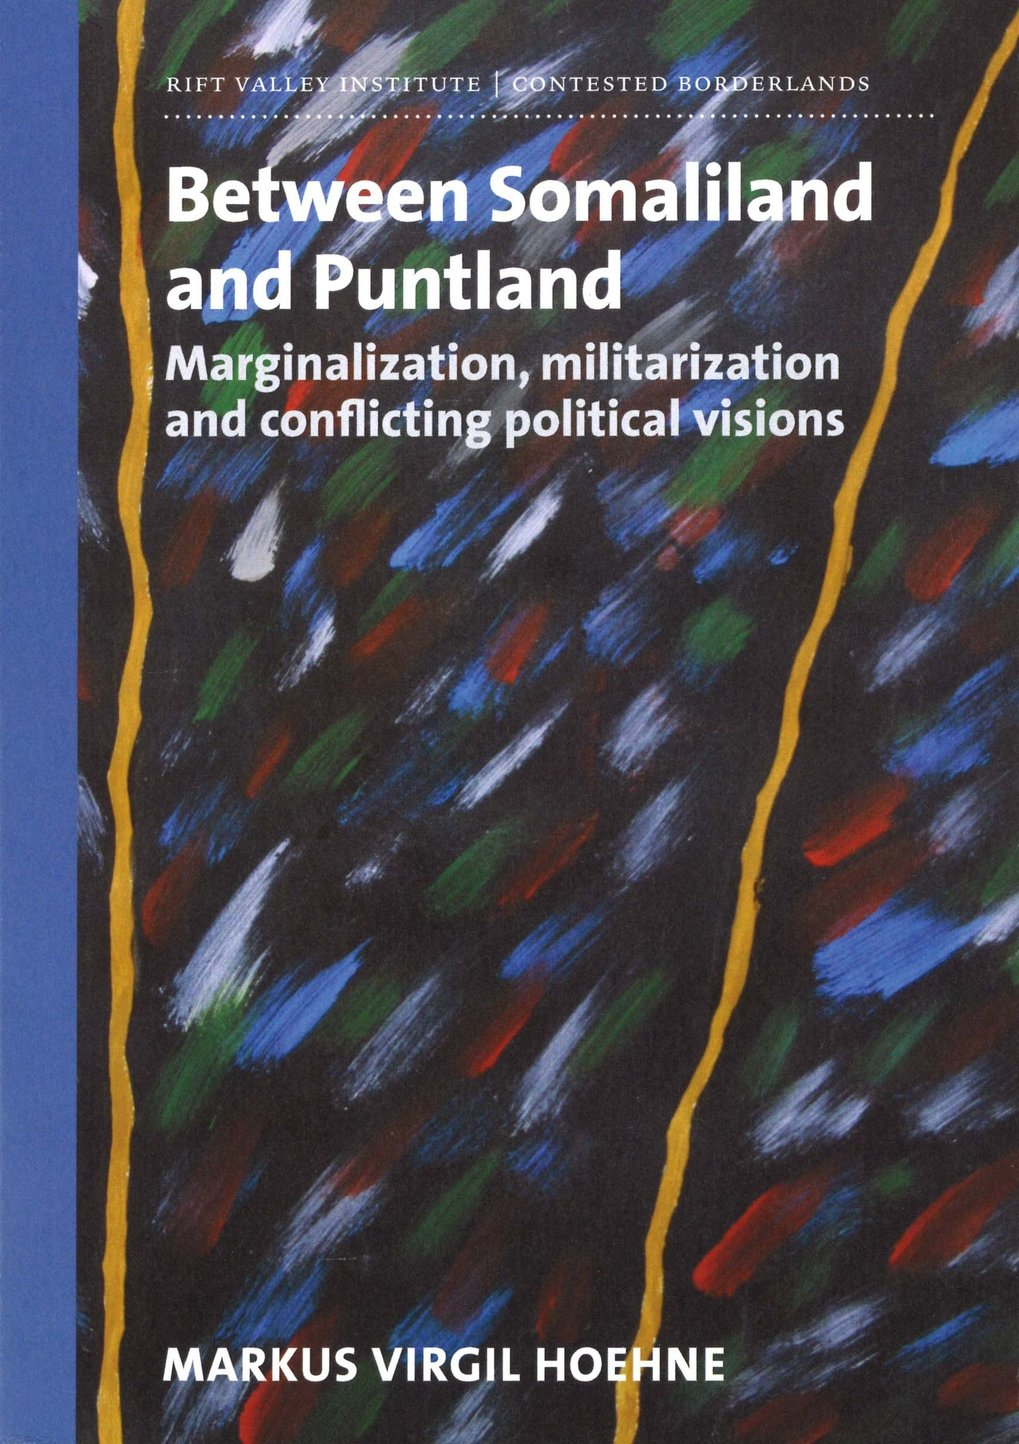 Between Somaliland and Puntland. Marginalization, militarization and conflicting political visions